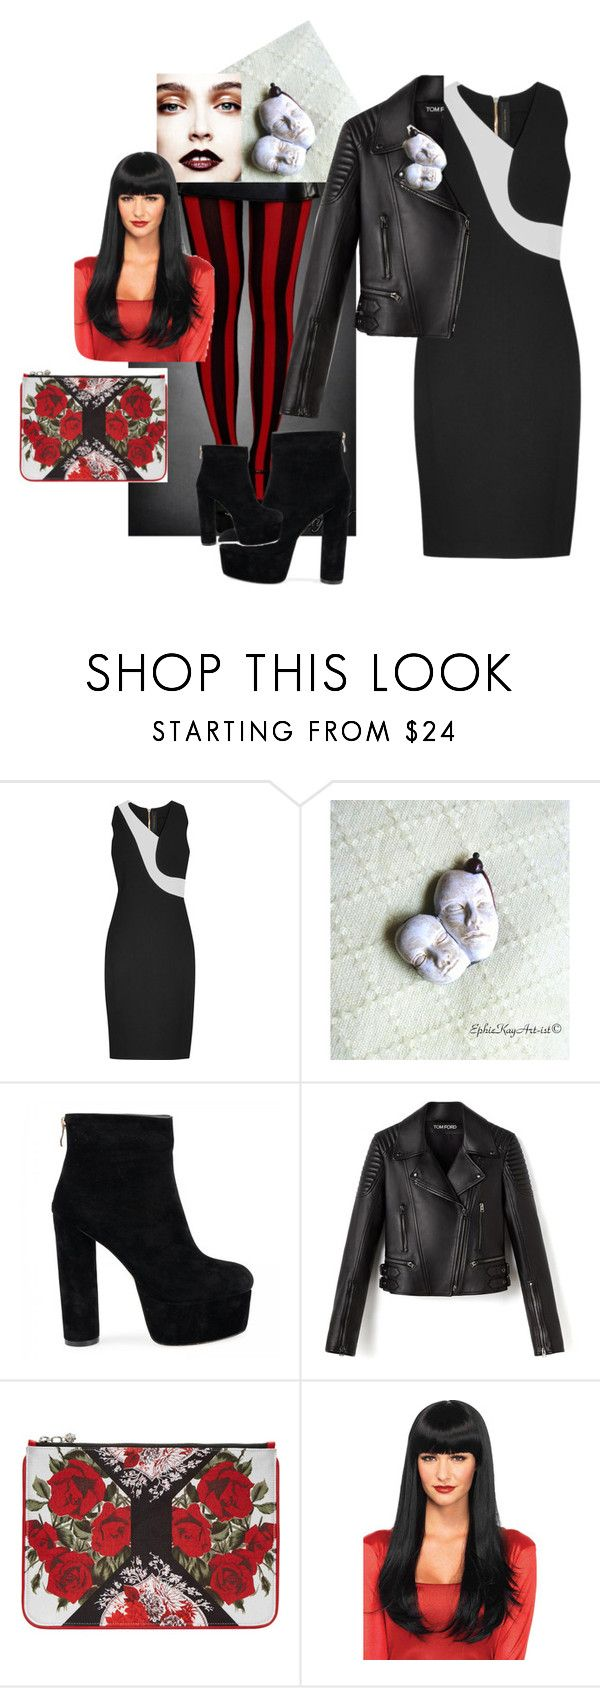 """Leather Black Roses Rock Chique by Ephie Kay Art-ist"" by ephiekayartist on Polyvore featuring Roland Mouret and Alexander McQueen"